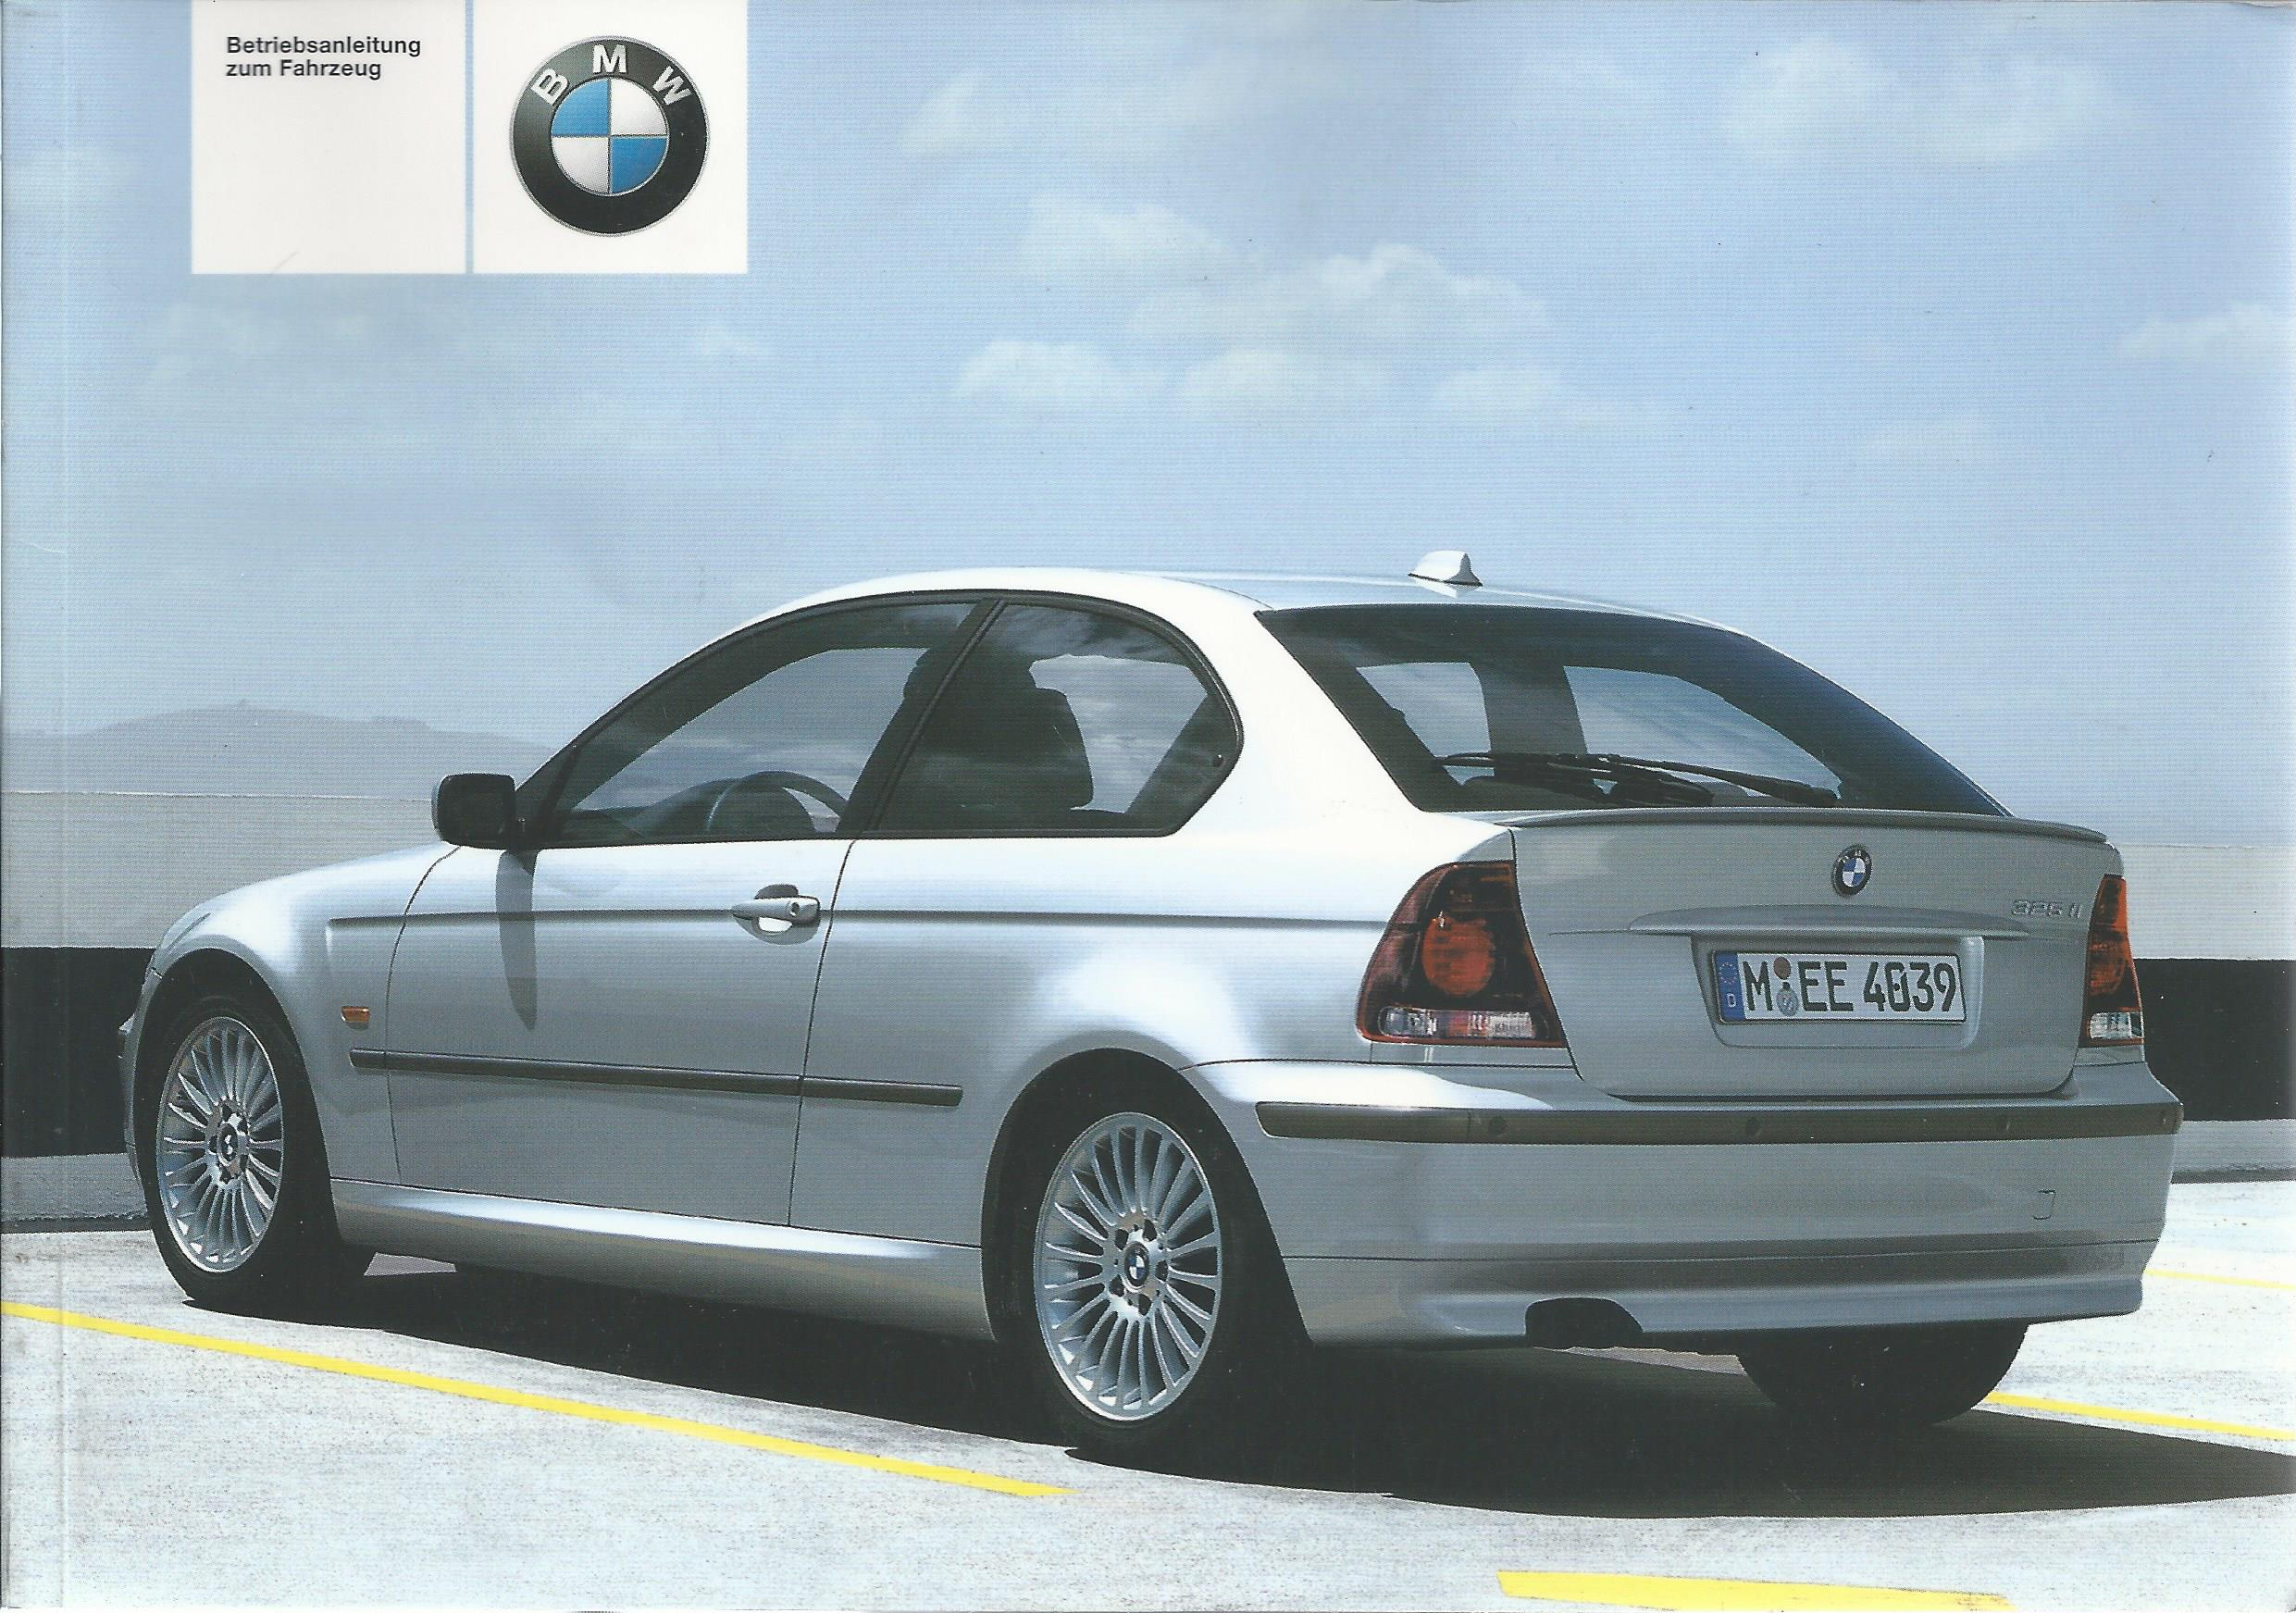 bmw 3er compact e46 betriebsanleitung 2003. Black Bedroom Furniture Sets. Home Design Ideas